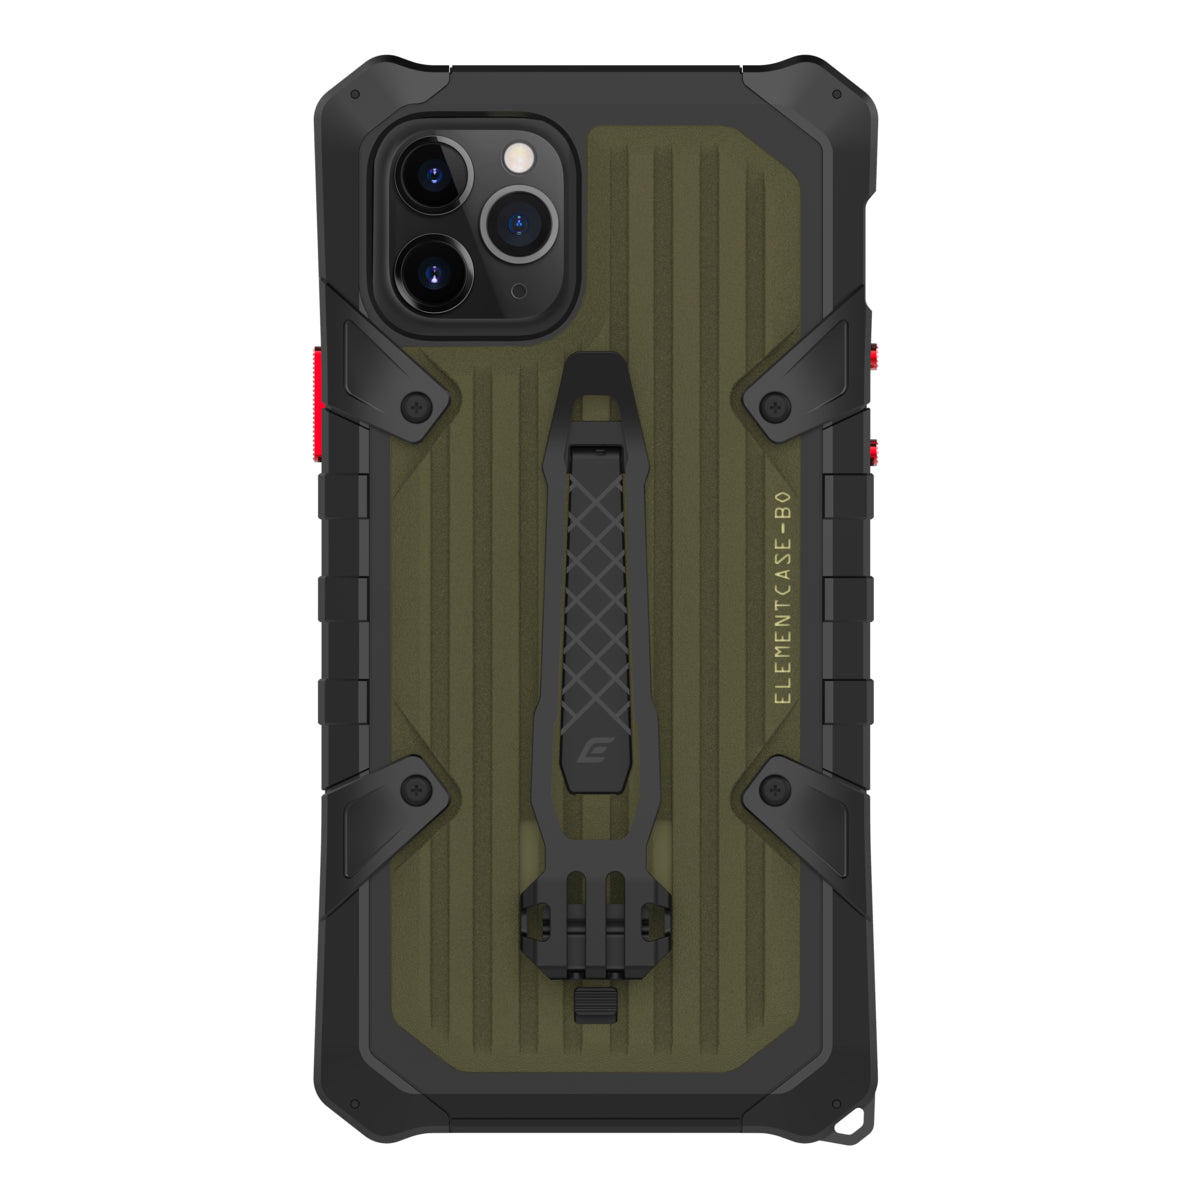 Element Case Black Ops Premium Case For iPhone 11 Pro Max - Olive